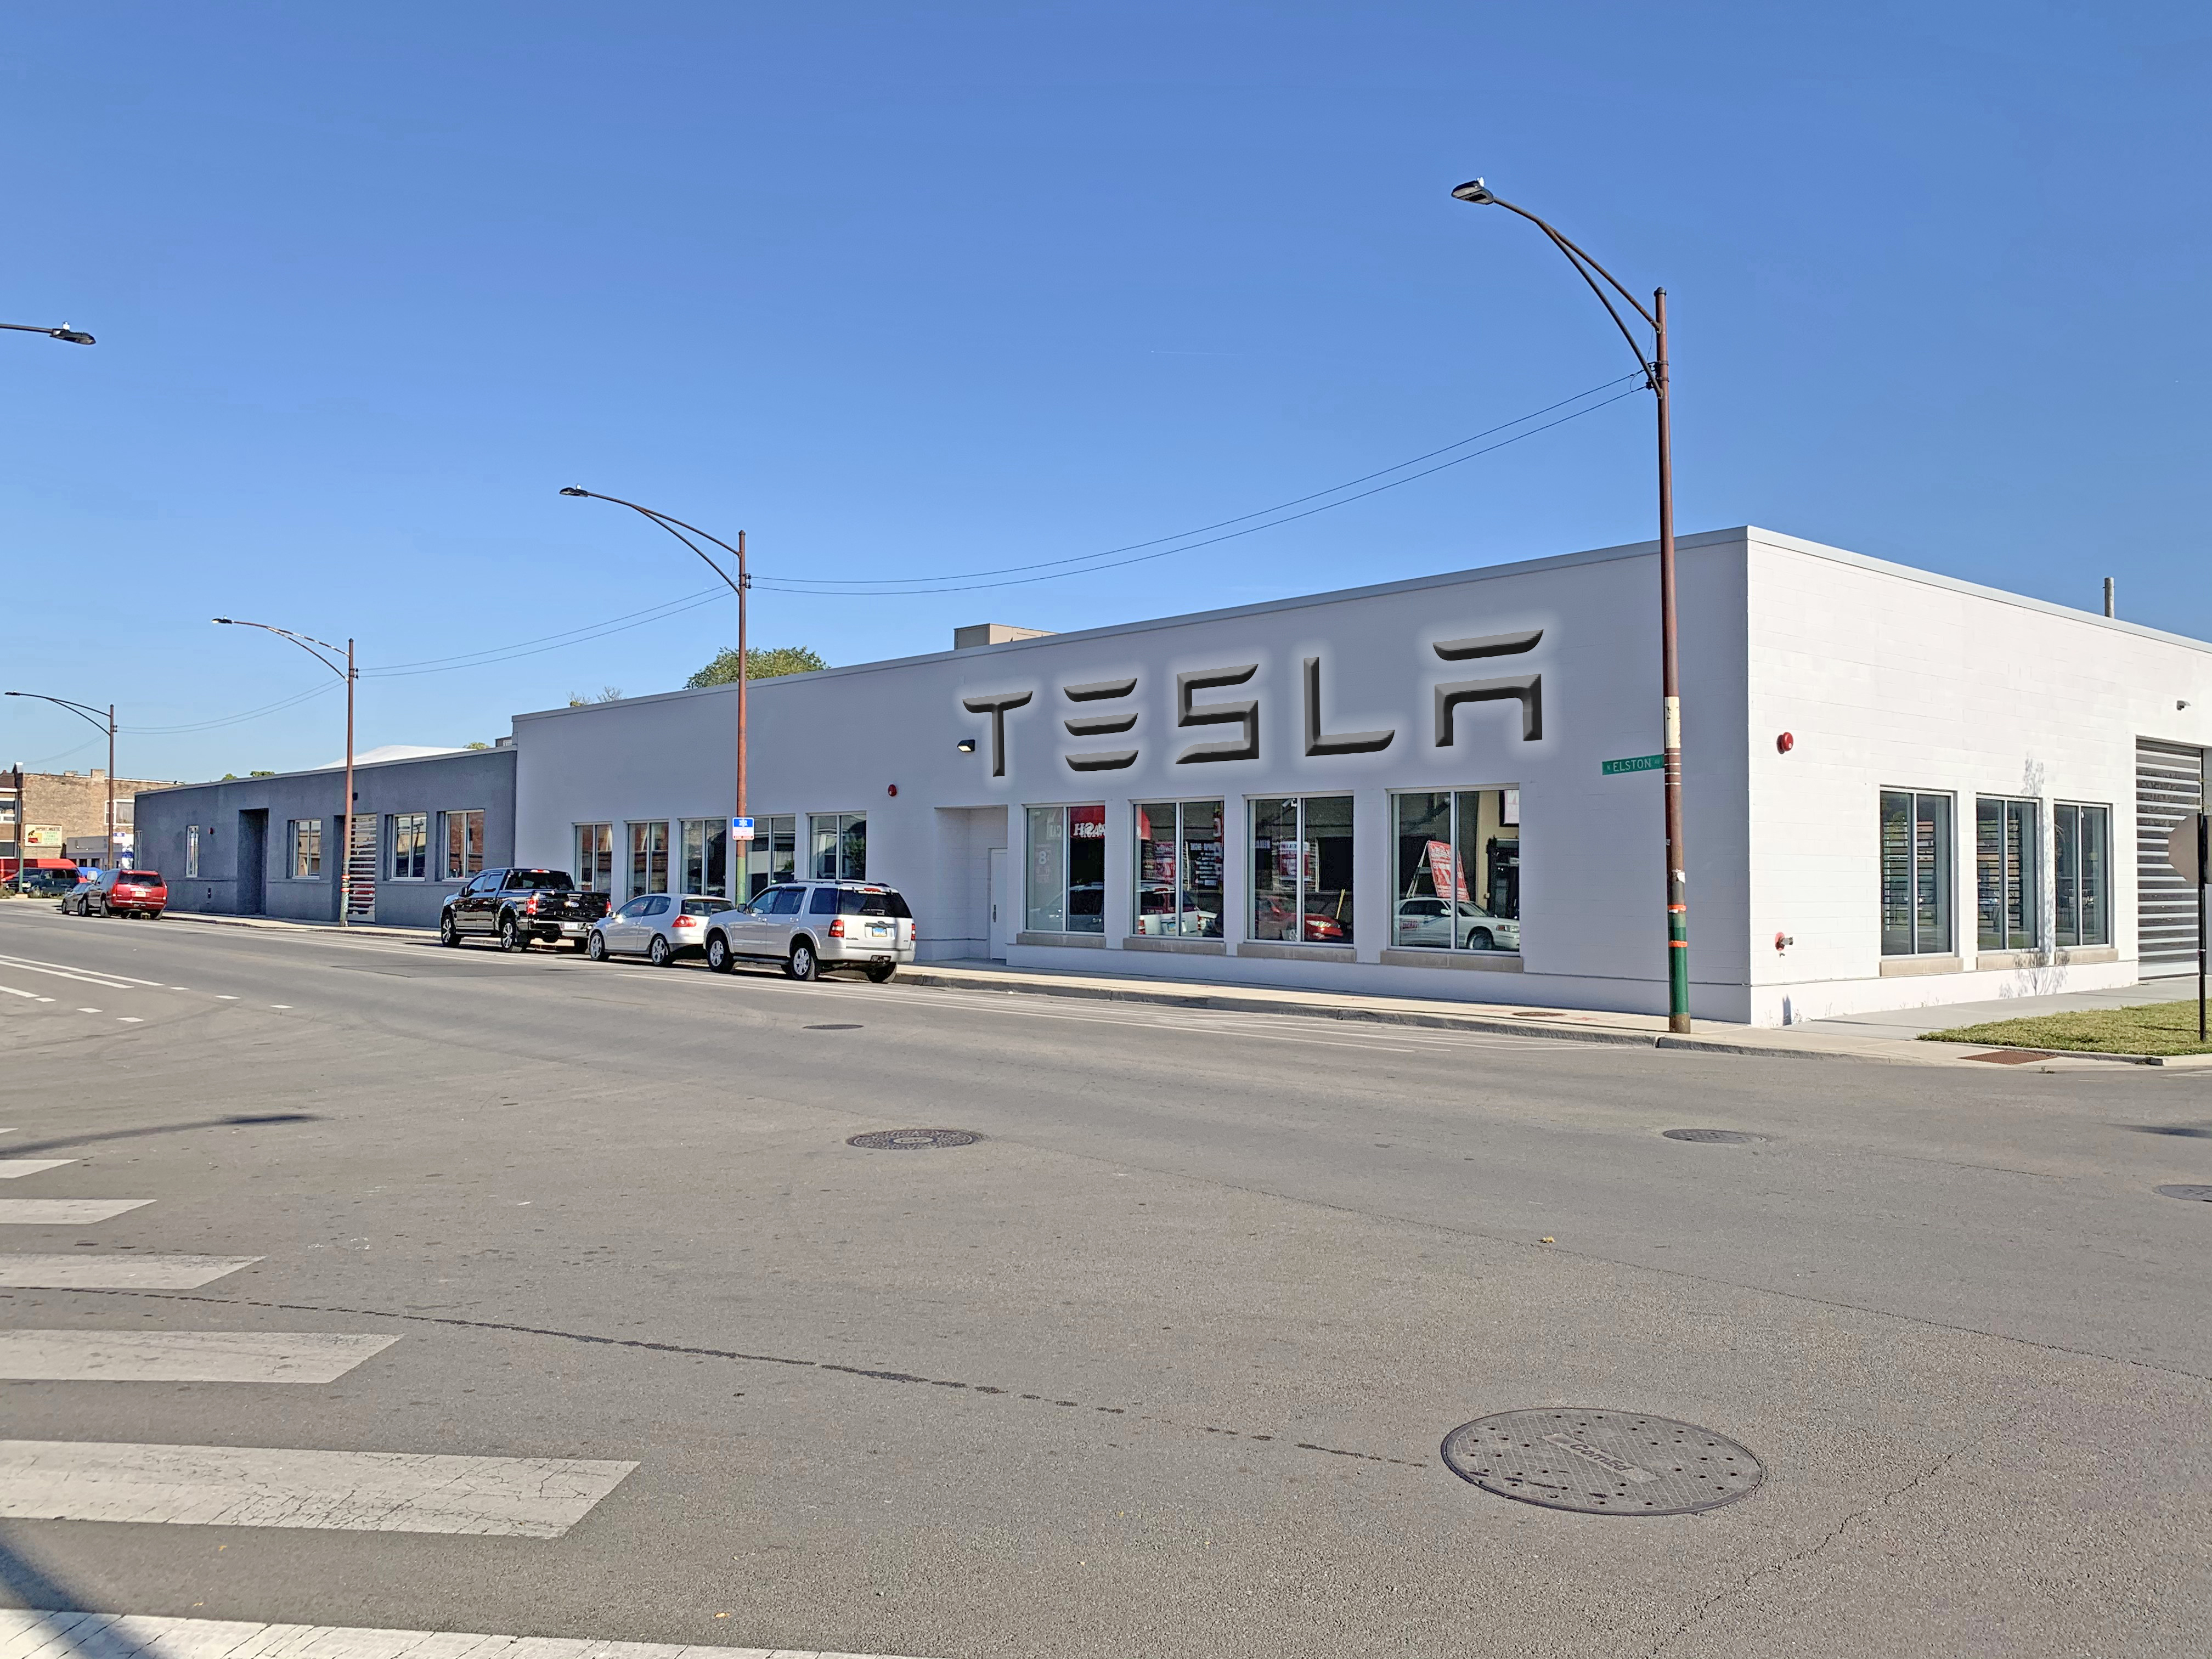 The Tesla service center at 3059-3067 N. Elston Ave. in Chicago sold for $13.1 million. (Cushman & Wakefield)